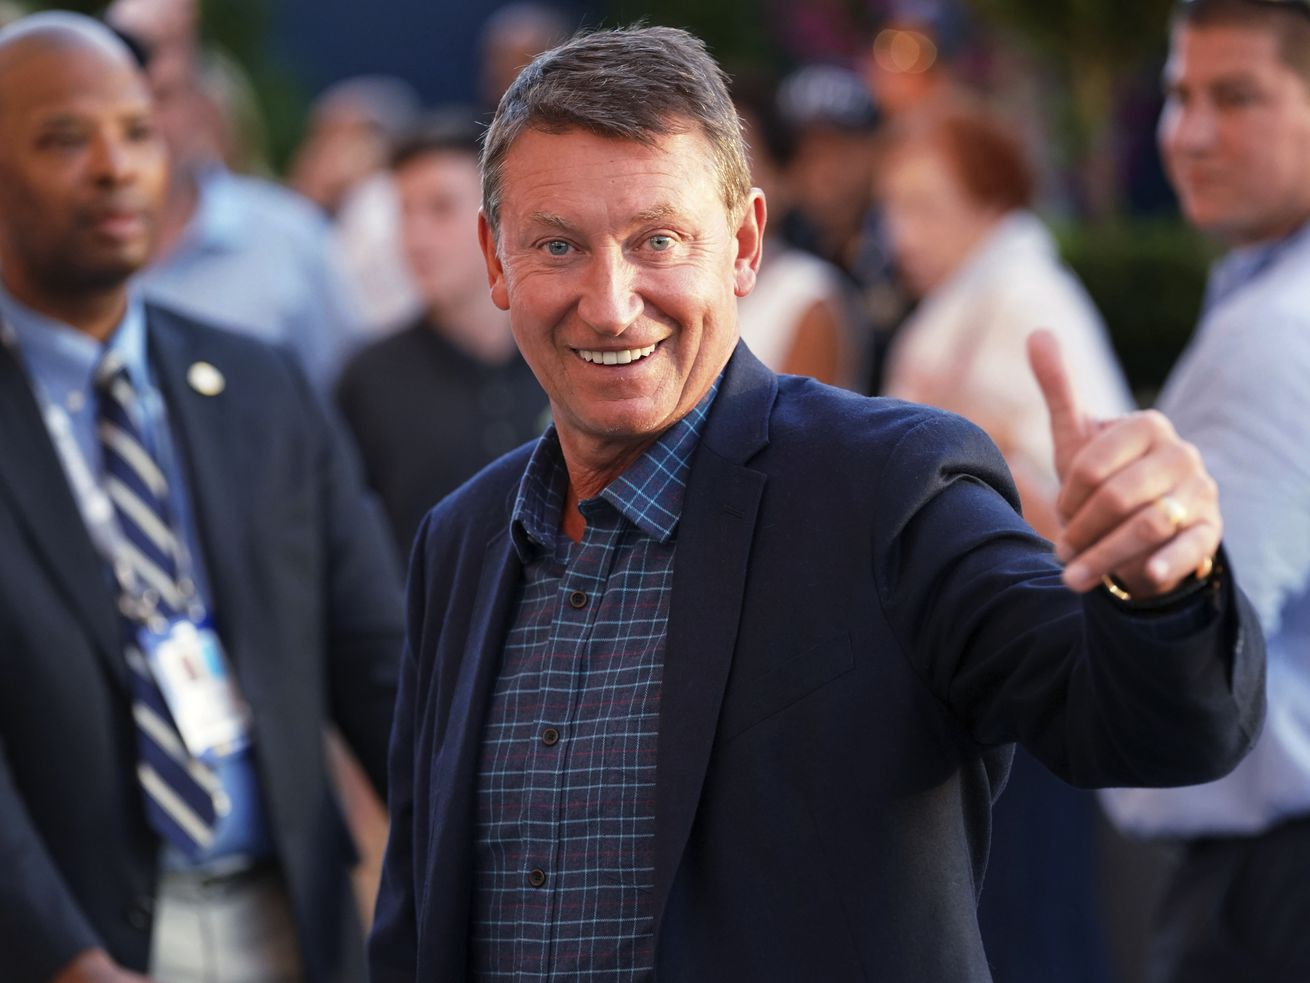 Turner Sports has reached a multi-year agreement with Wayne Gretzky to be a studio analyst when its coverage of the National Hockey League begins in October.